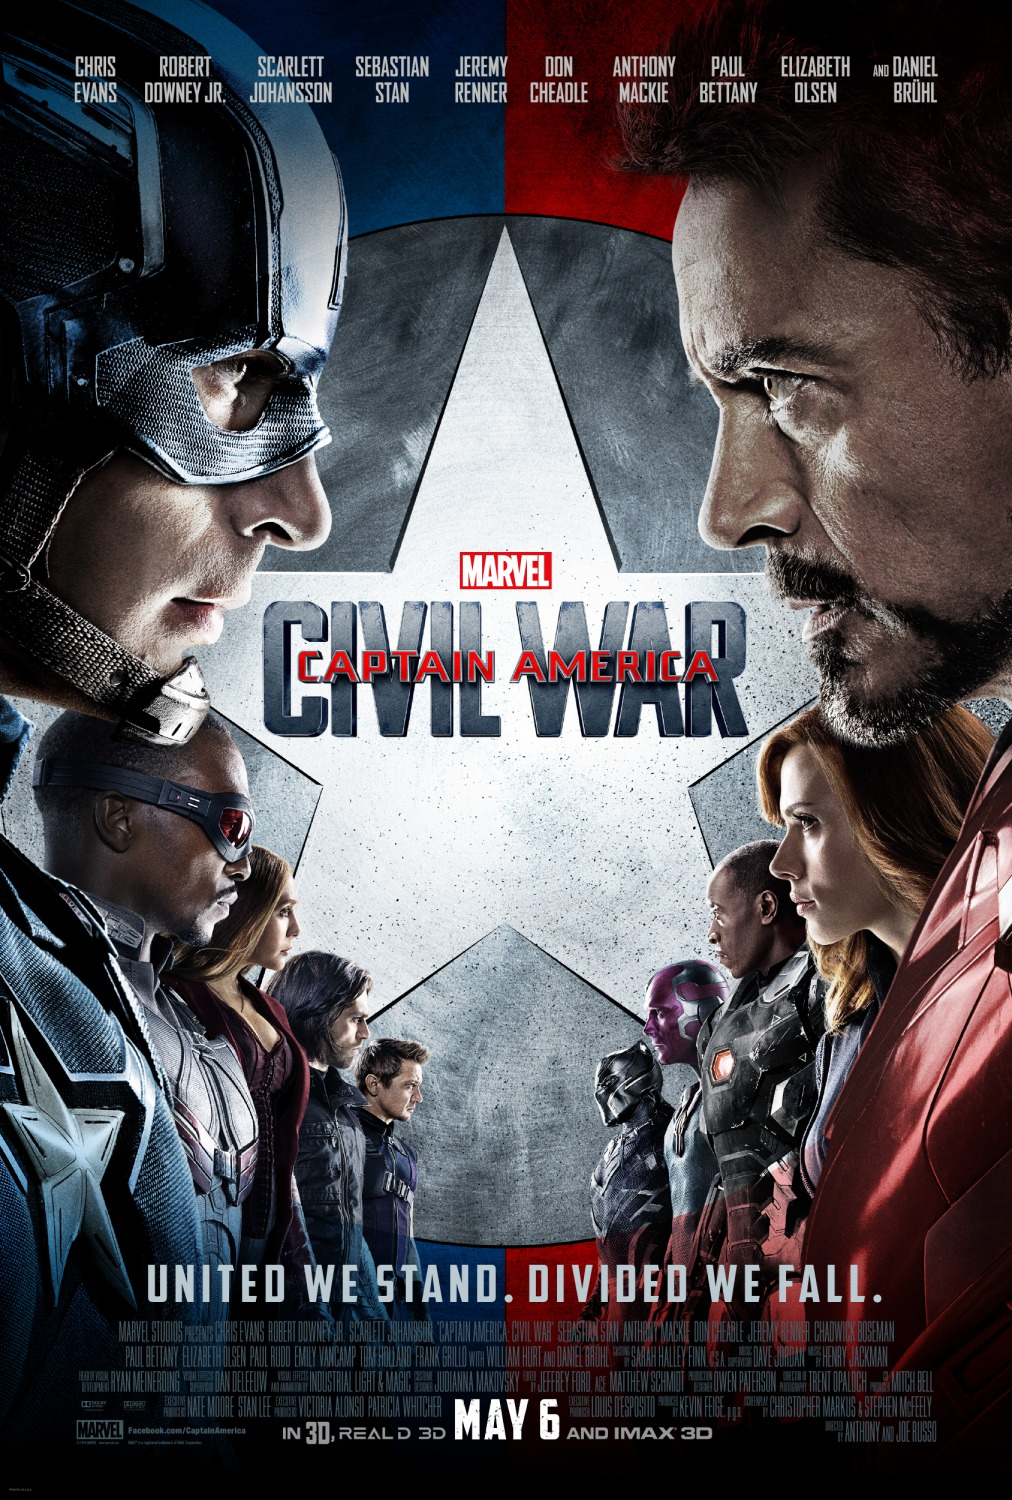 14 - Captain America Civil War